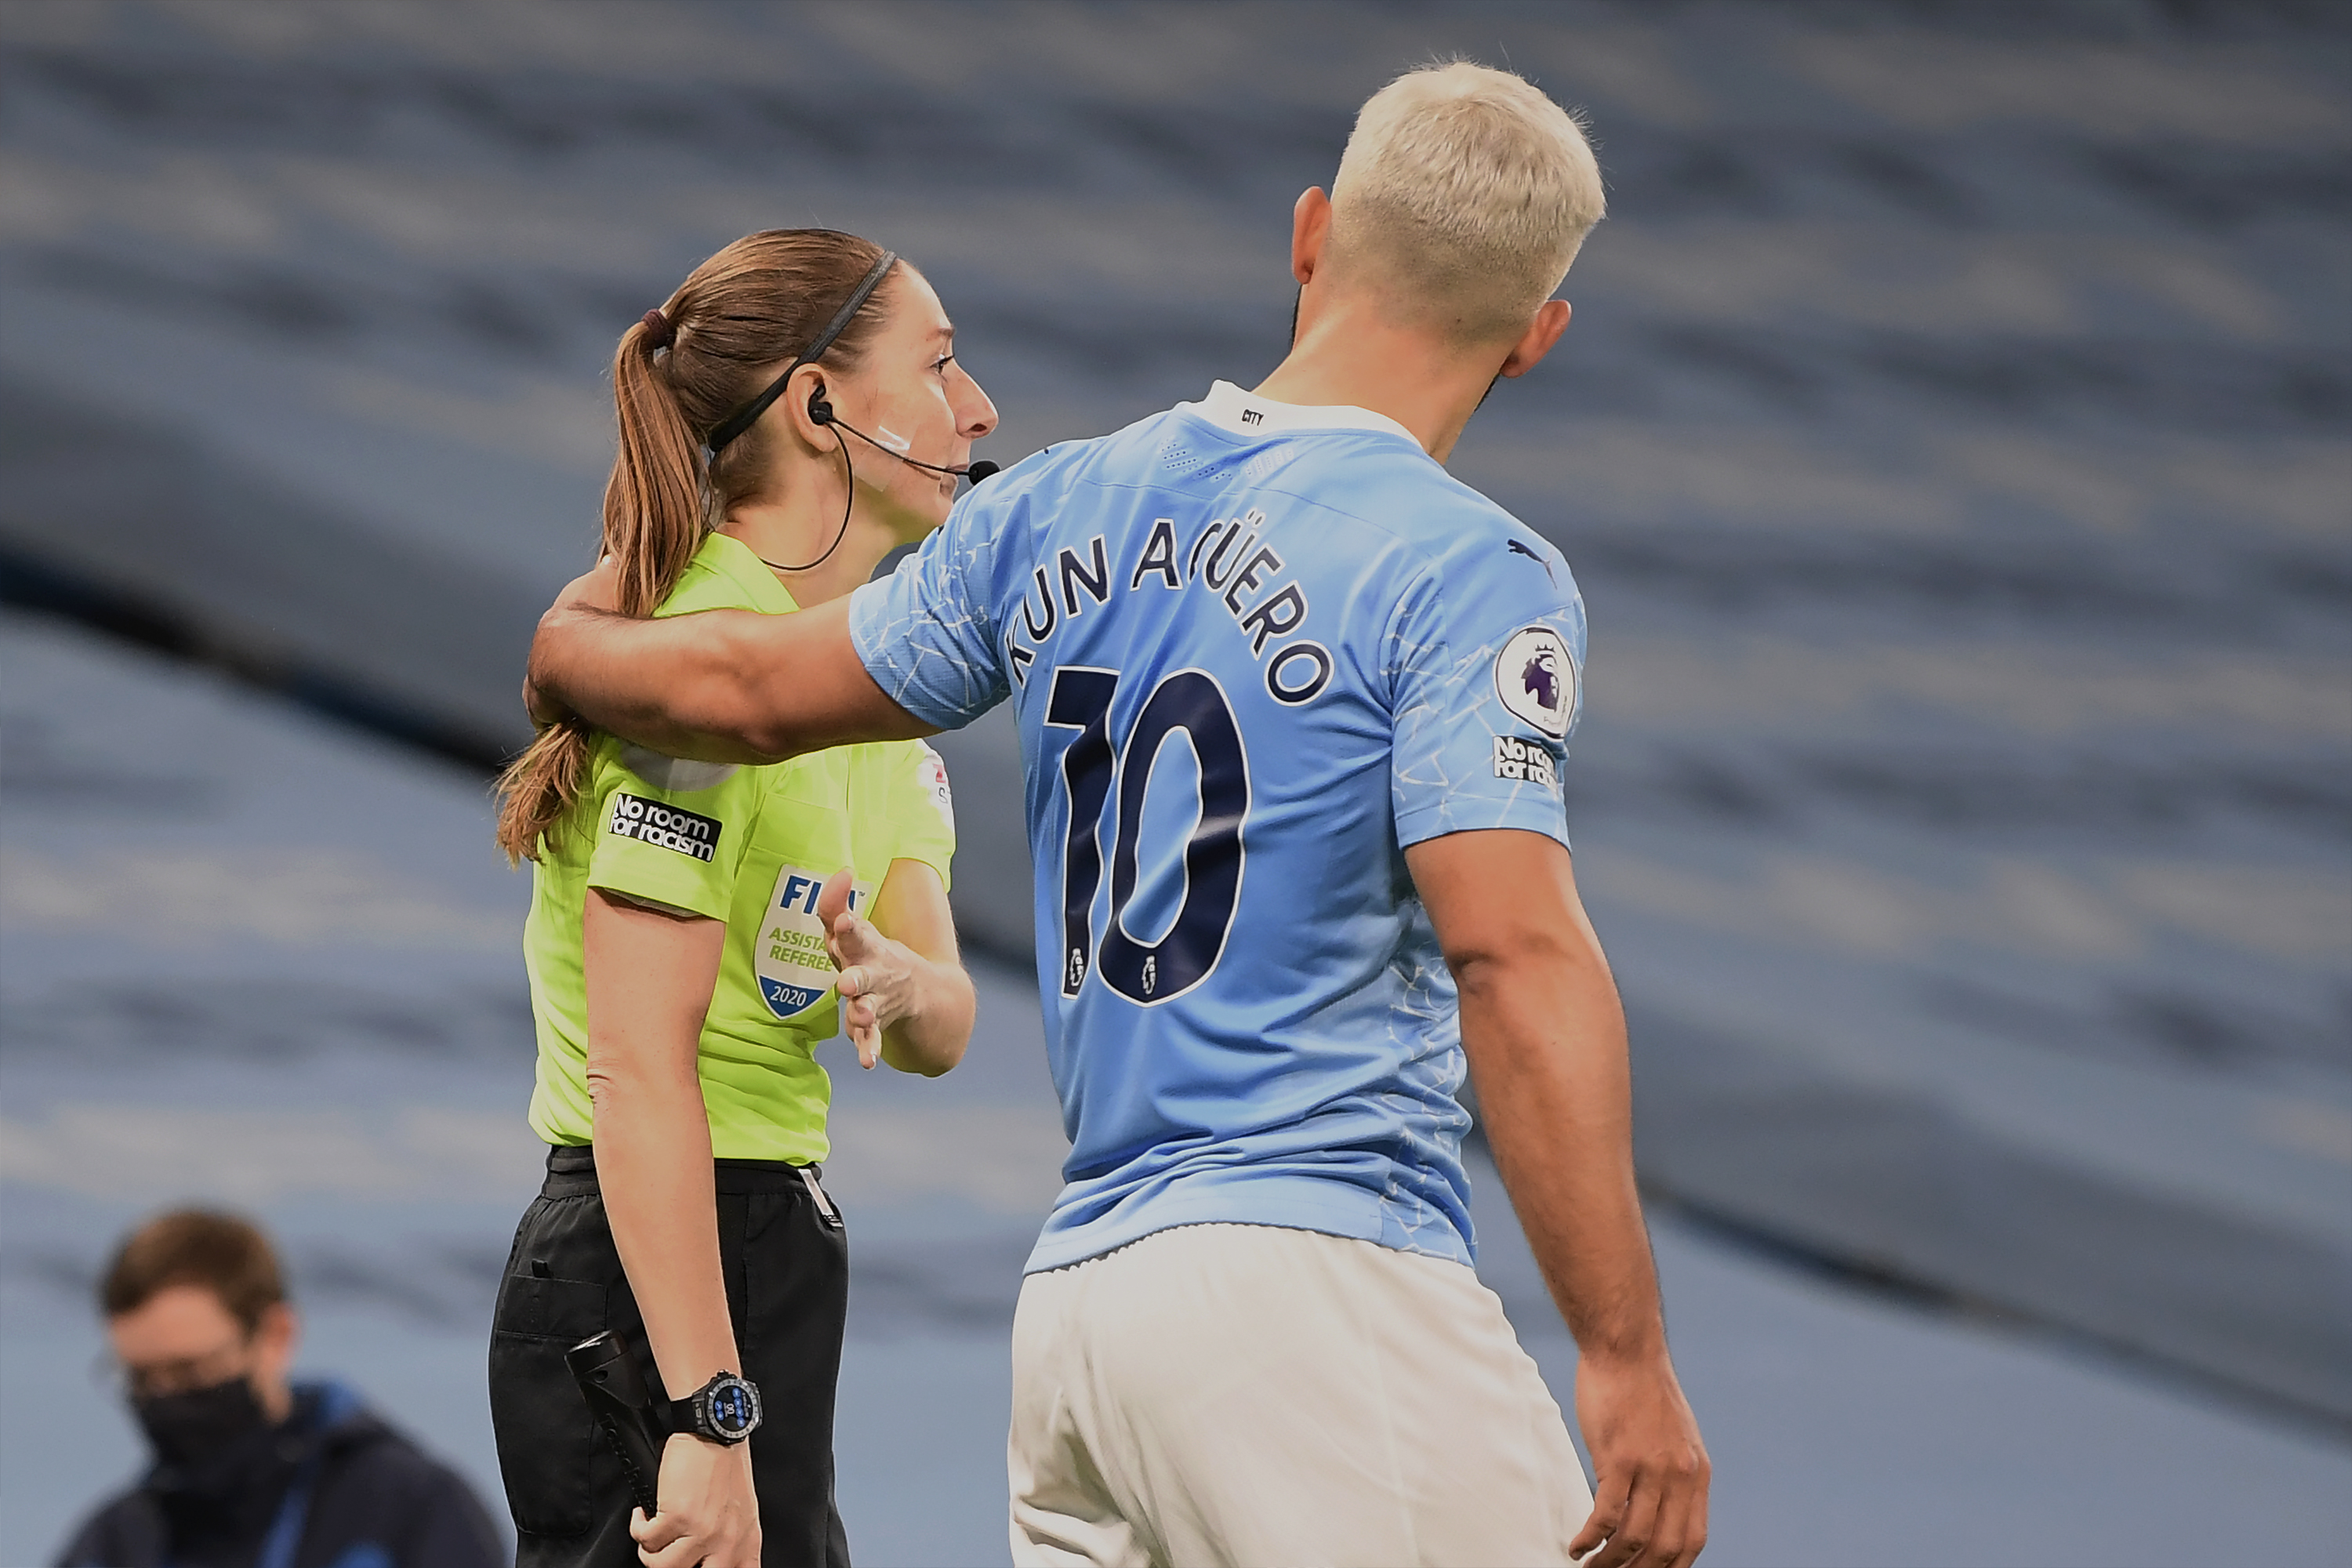 Manchester City star Sergio Aguero widely criticized for putting his hand on the shoulder of a female official